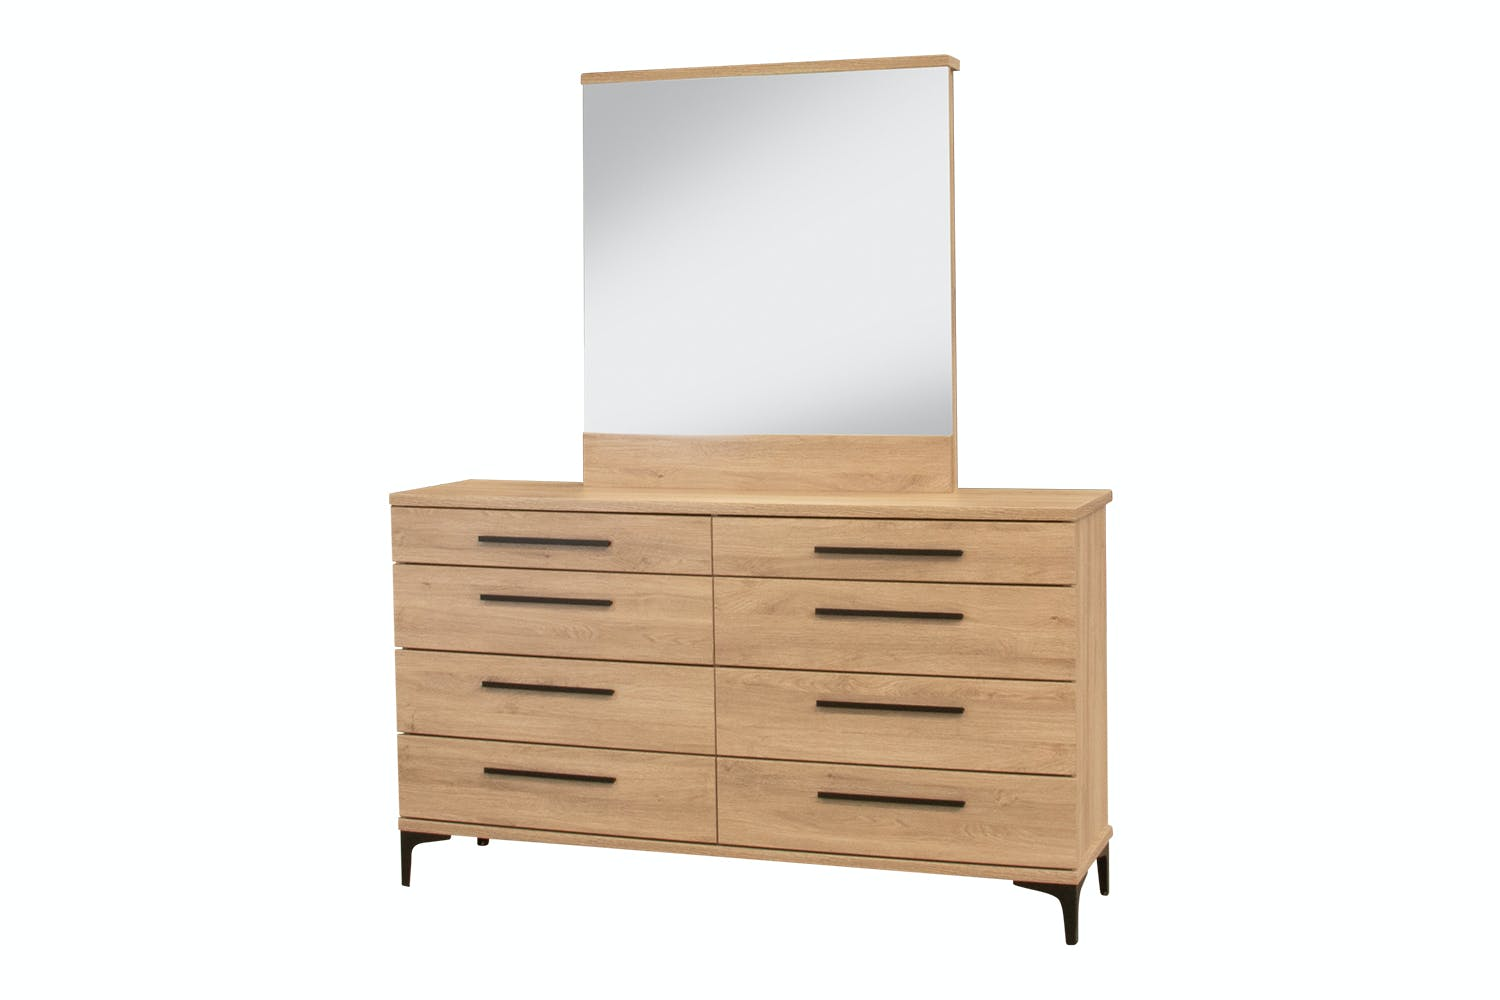 Aza 8 Drawer Dresser With Mirror By Compac Furniture